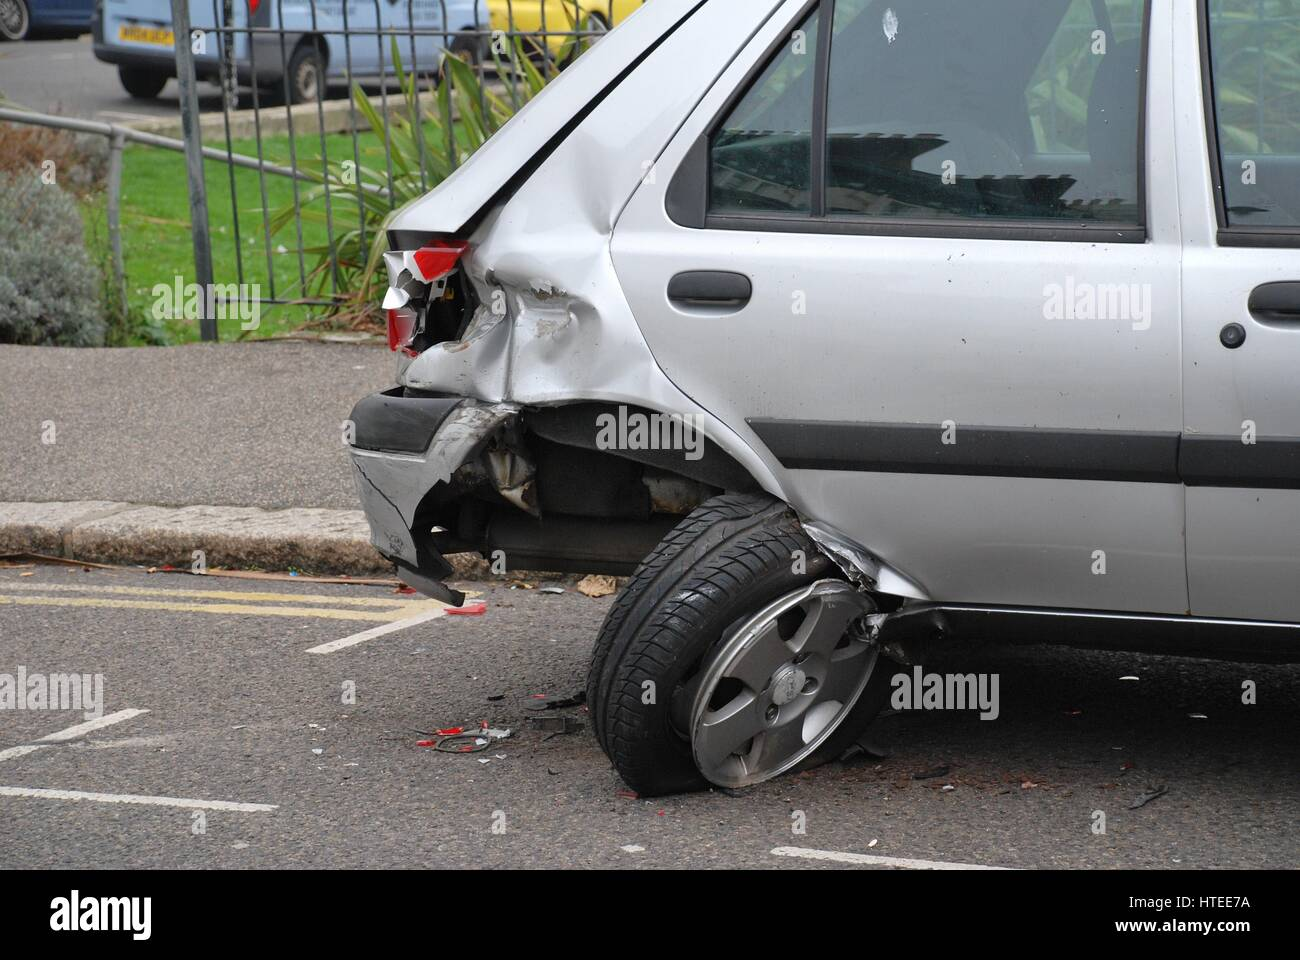 A badly damaged Ford Fiesta car after a traffic accident at Warrior Square in St.Leonards-on-Sea in East Sussex, - Stock Image